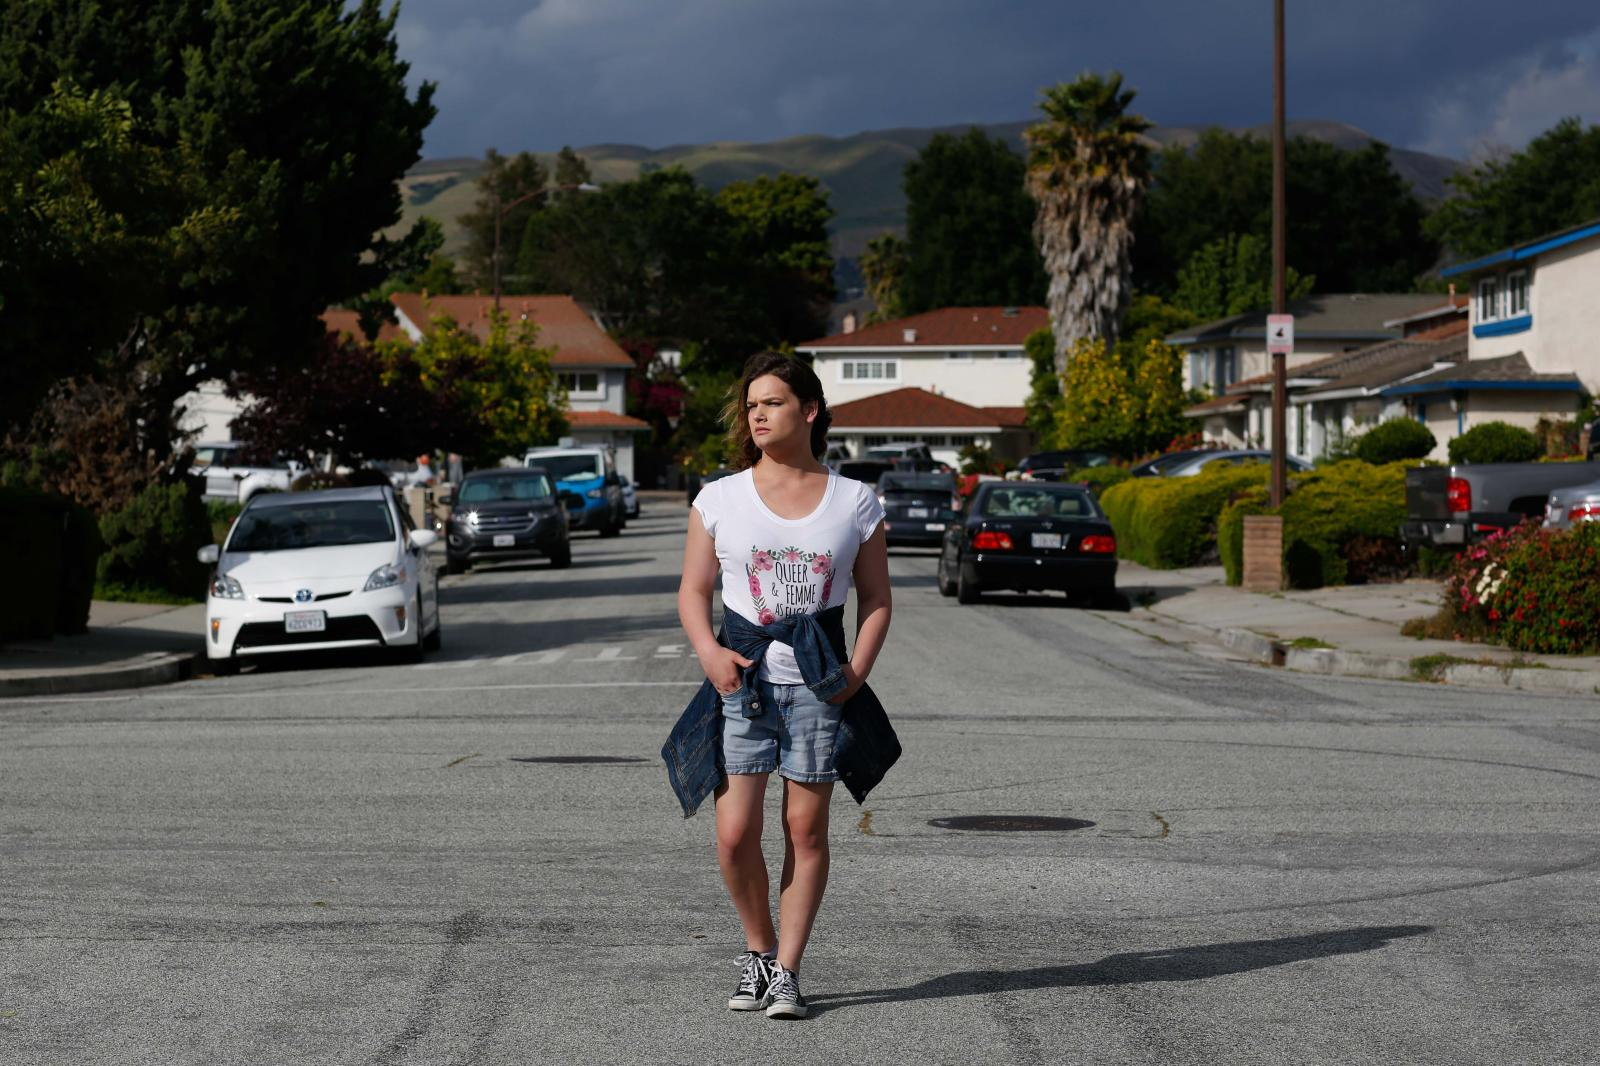 Pia Cruz, 22, stands for a portrait in her suburban neighborhood on Thursday, May 24, 2019 in San Jose, Calif.